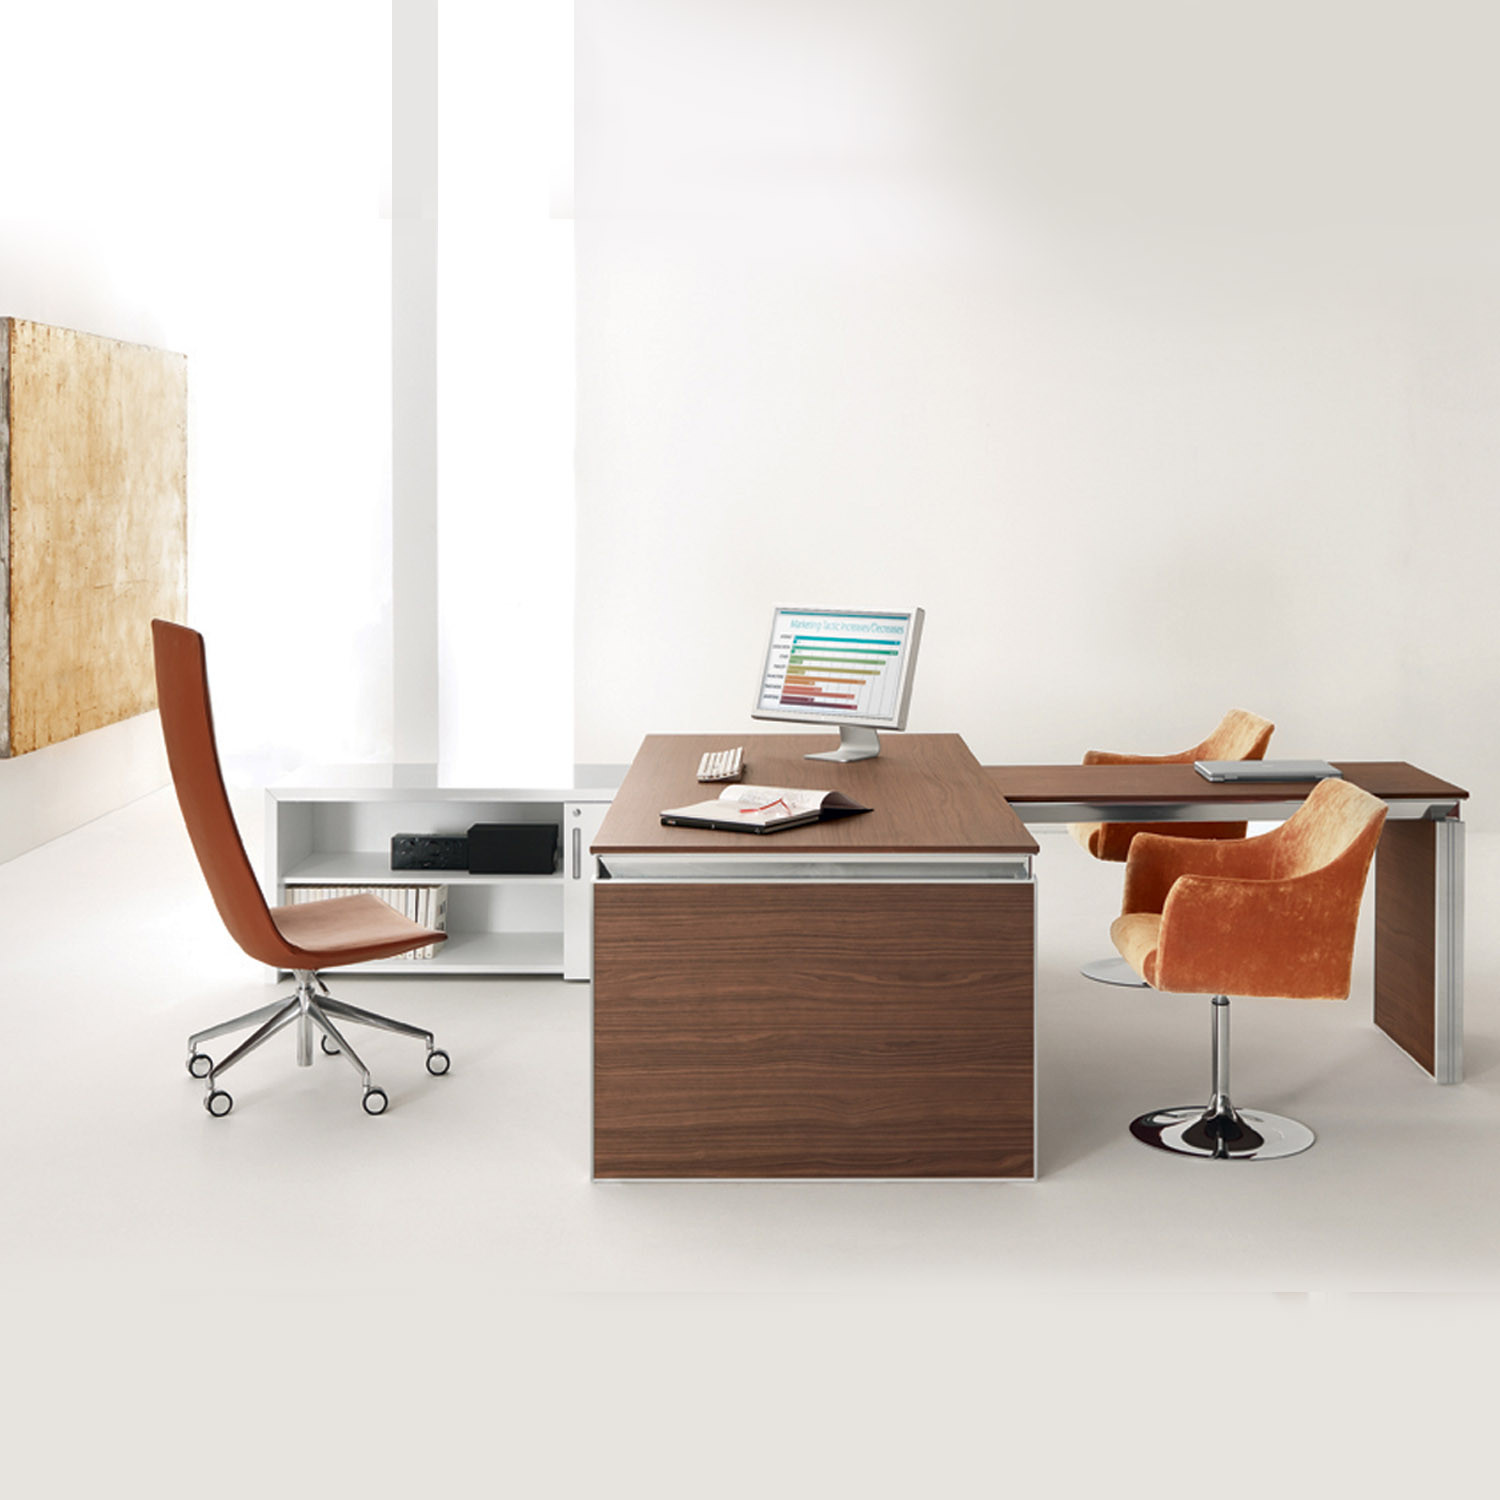 Bespoke Office Furniture Product Design 3